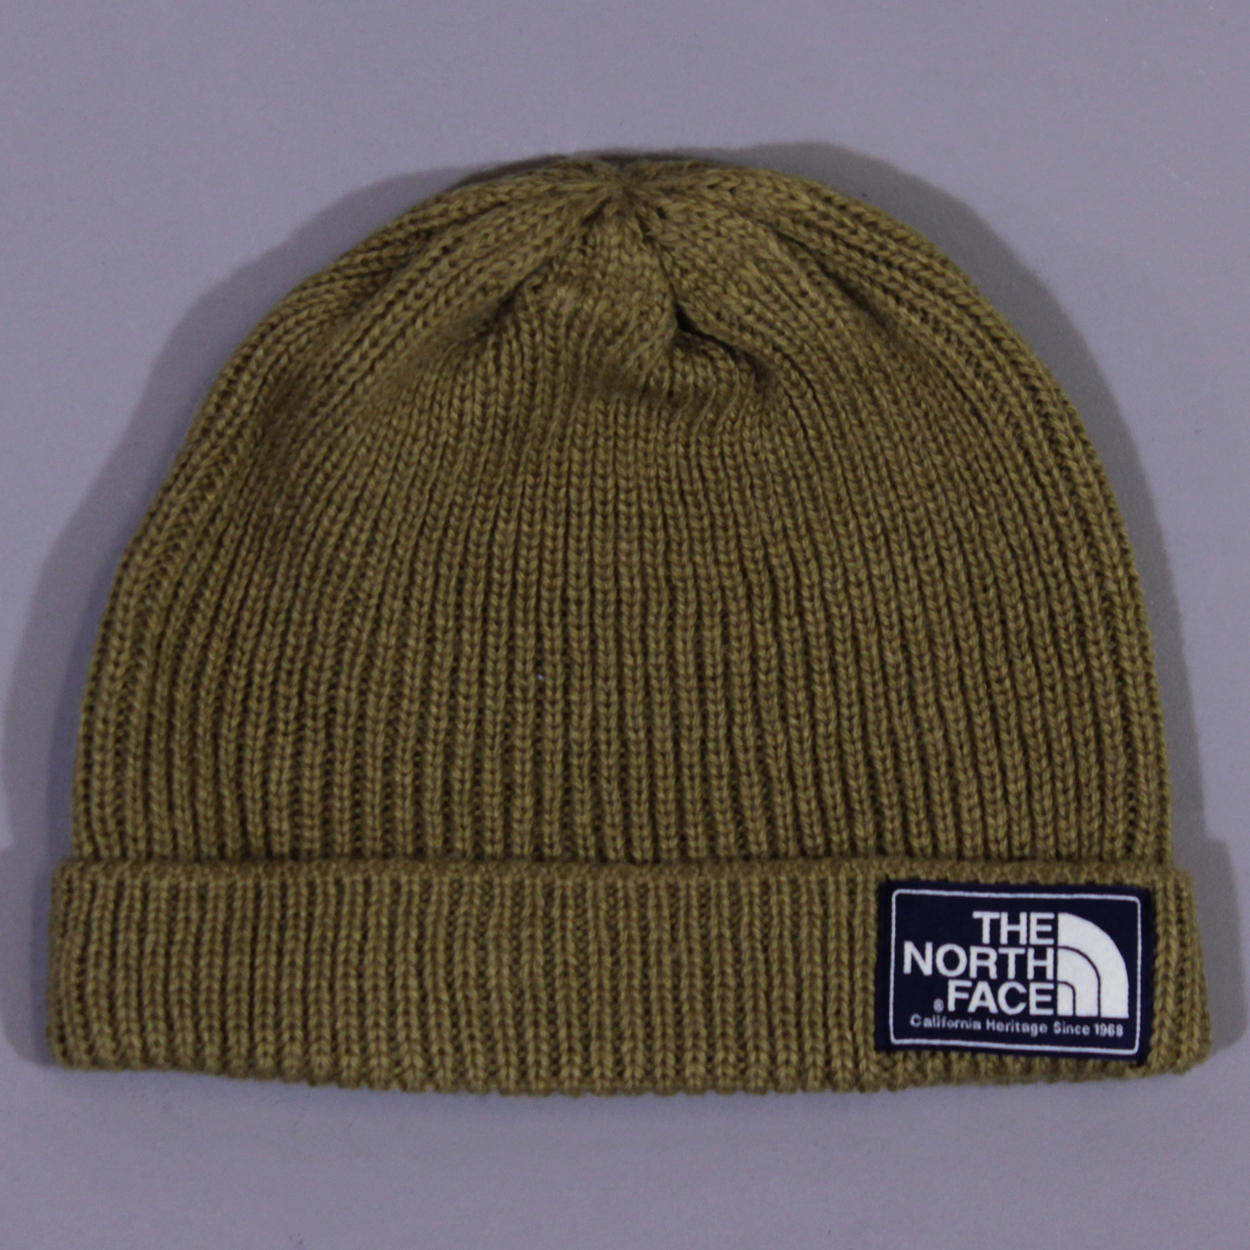 8a5982134 The North Face Heritage Shipyard Beanie Wooly Hat British Khaki £12.00